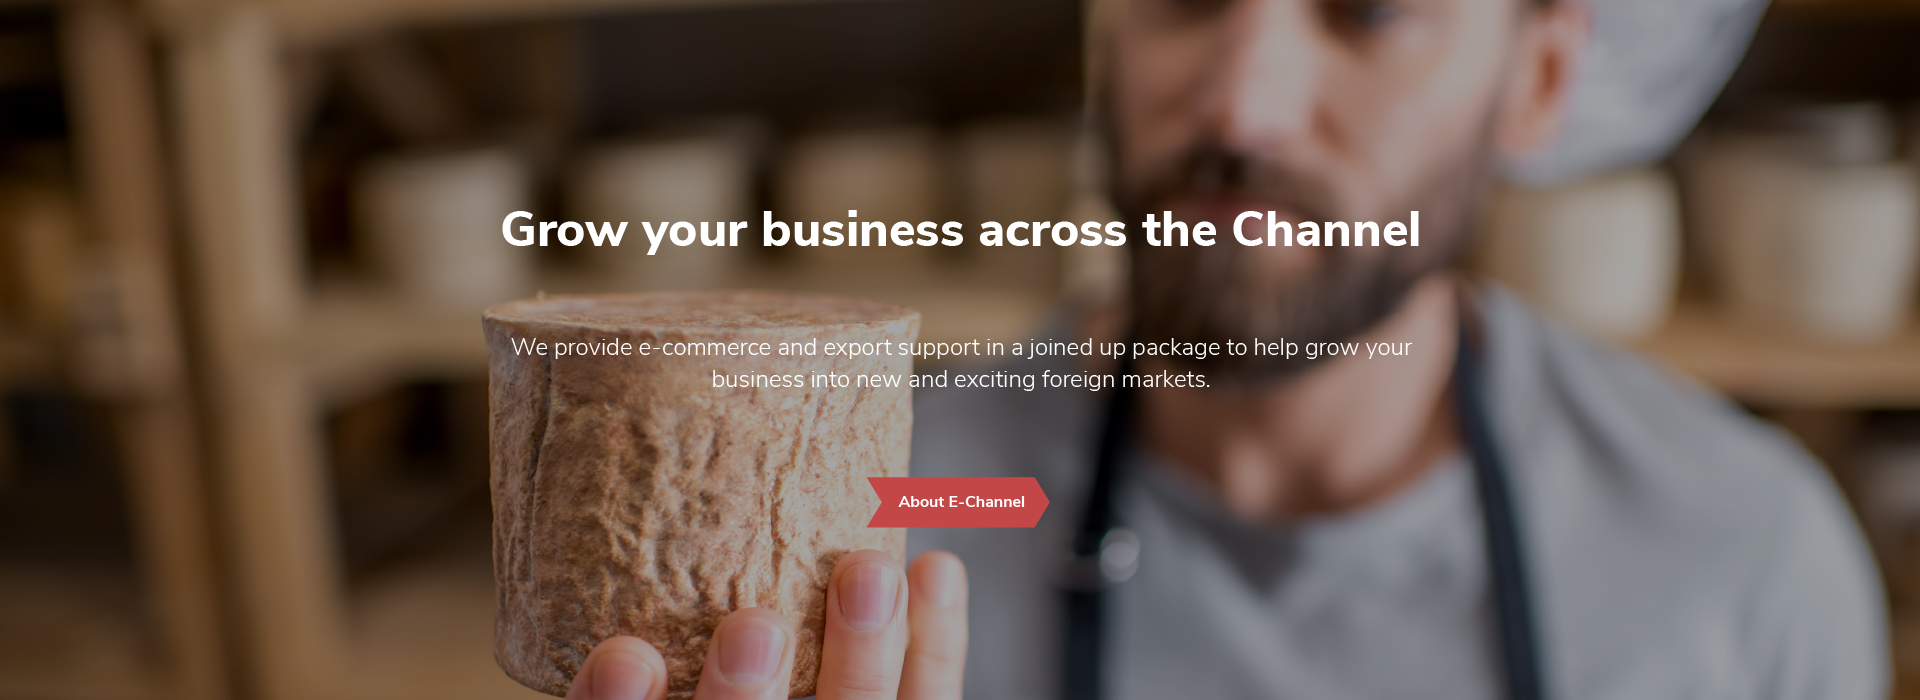 Grow your business across the Channel